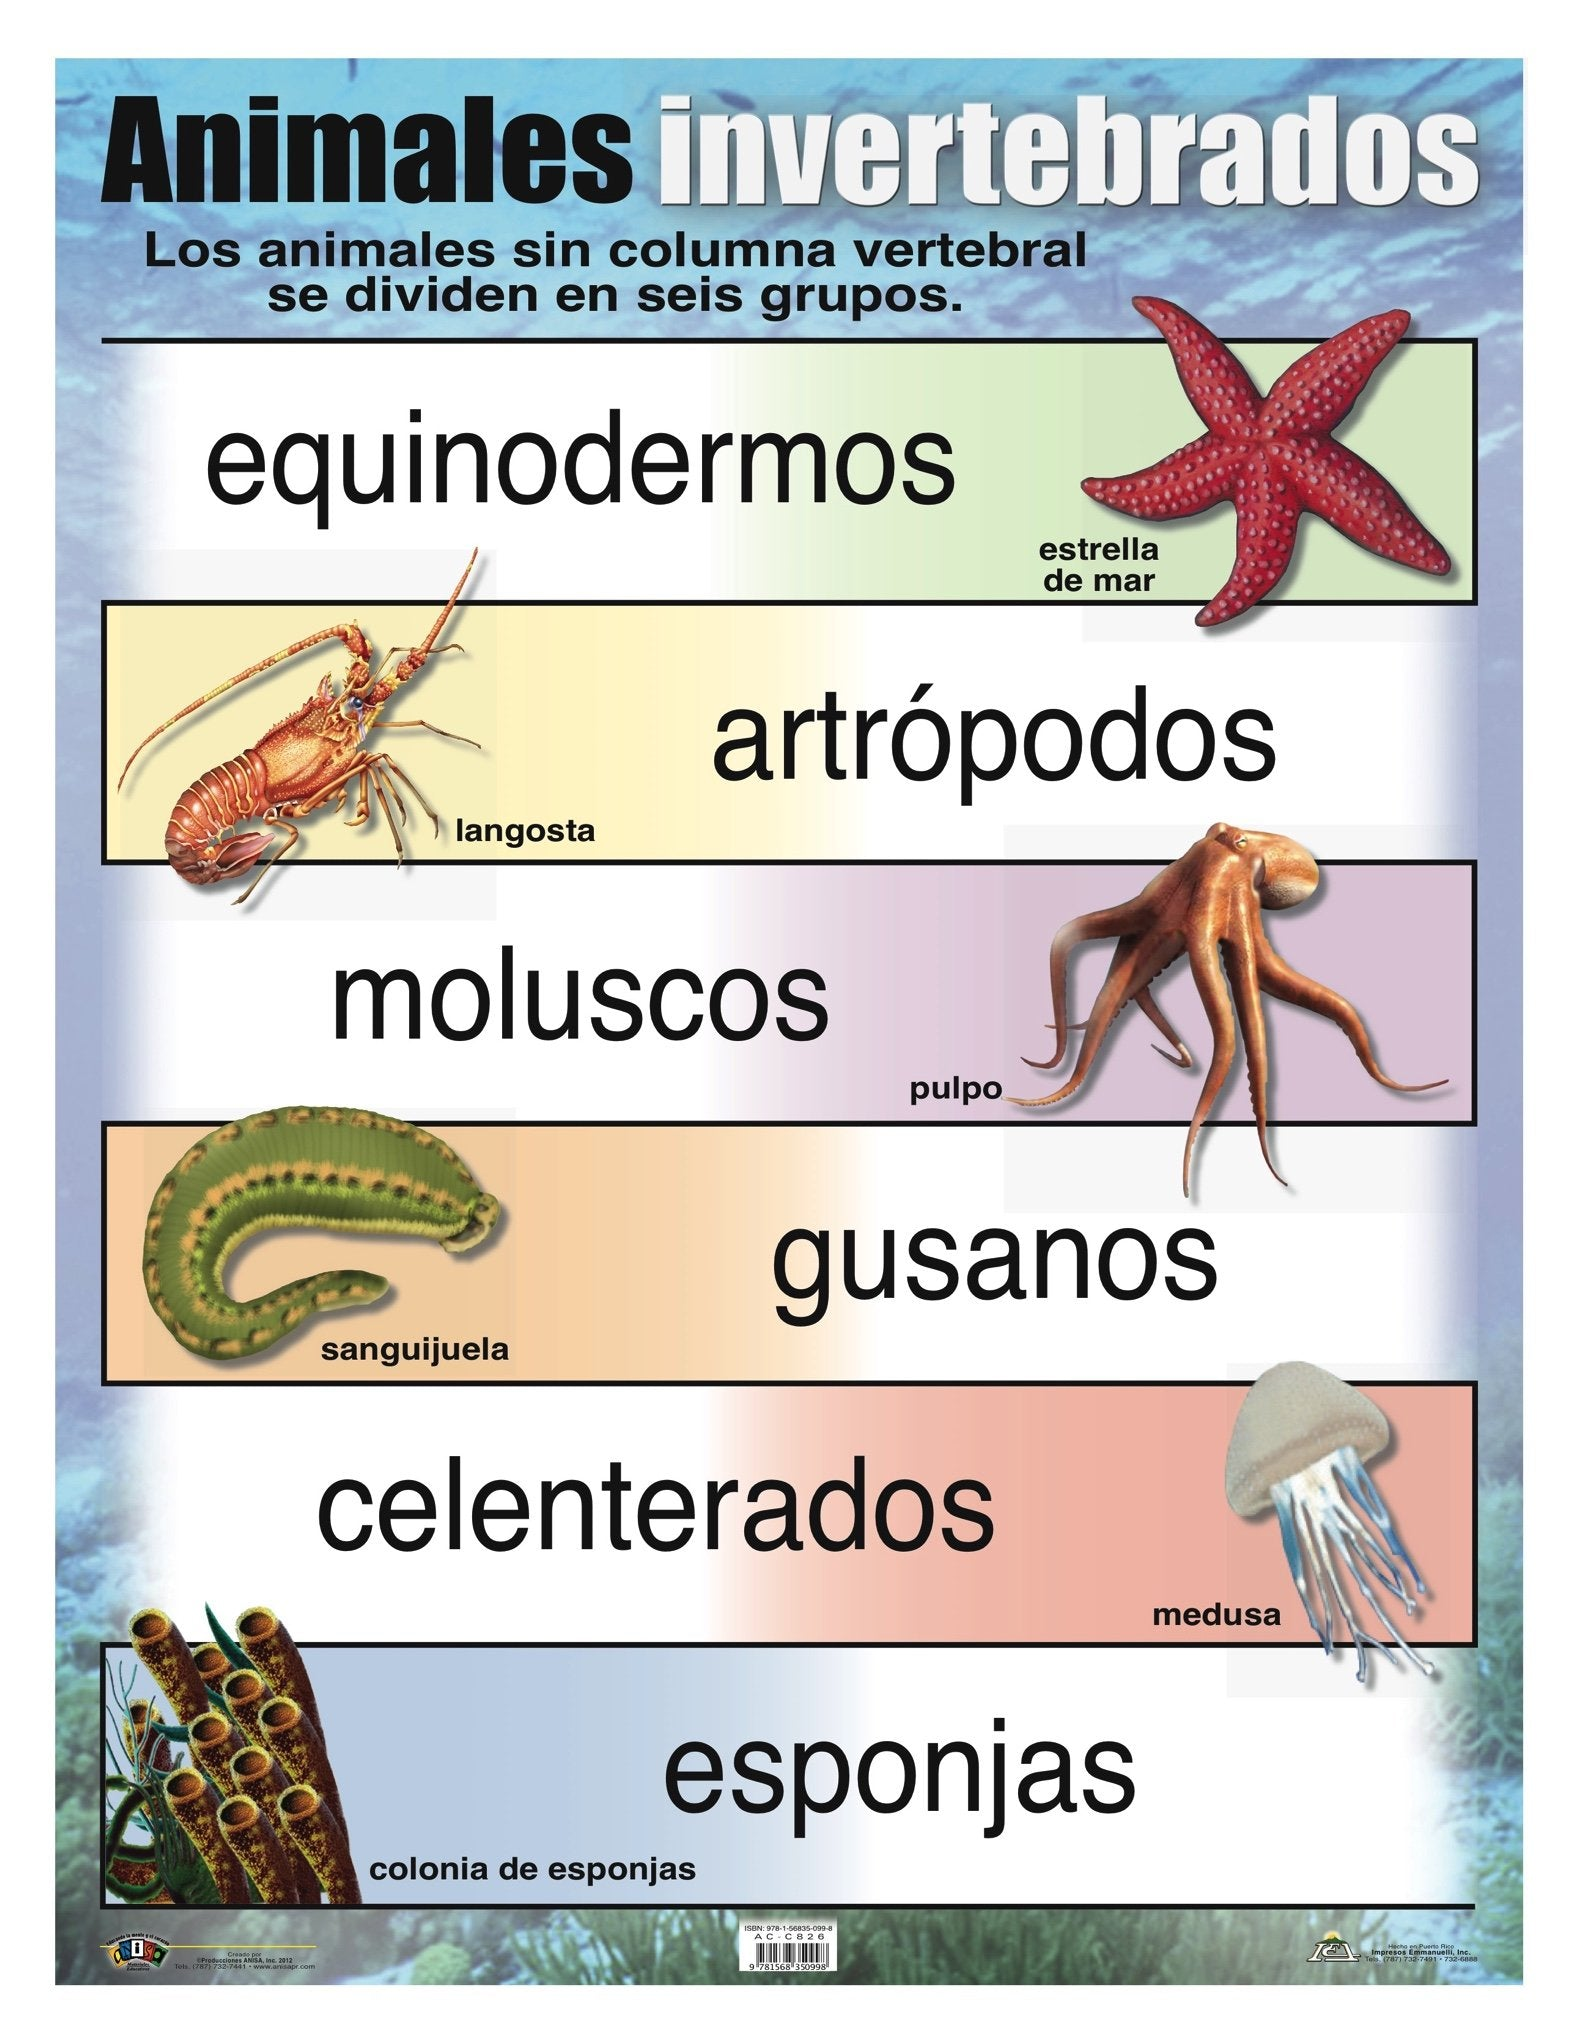 AC-C826 Animales invertebrados